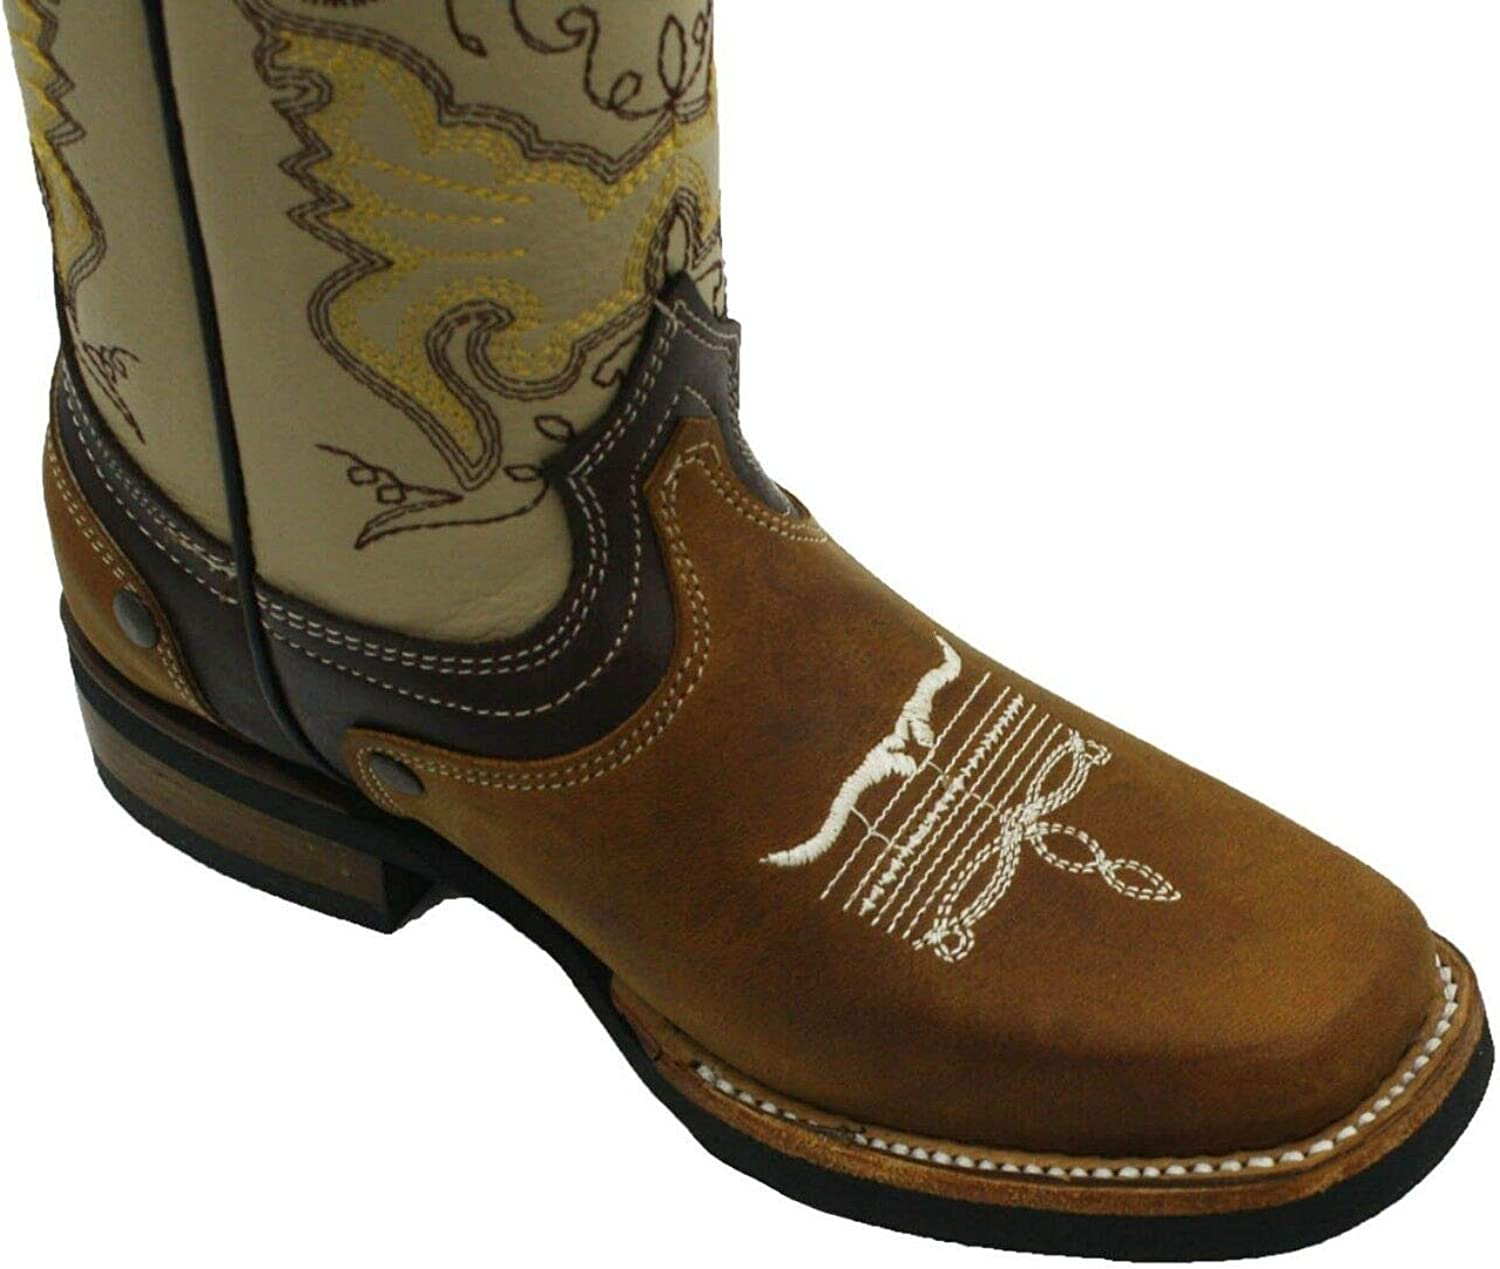 Kids Genuine Cowhide Cowboy Square Toe Western Leather Sole Tan Boots